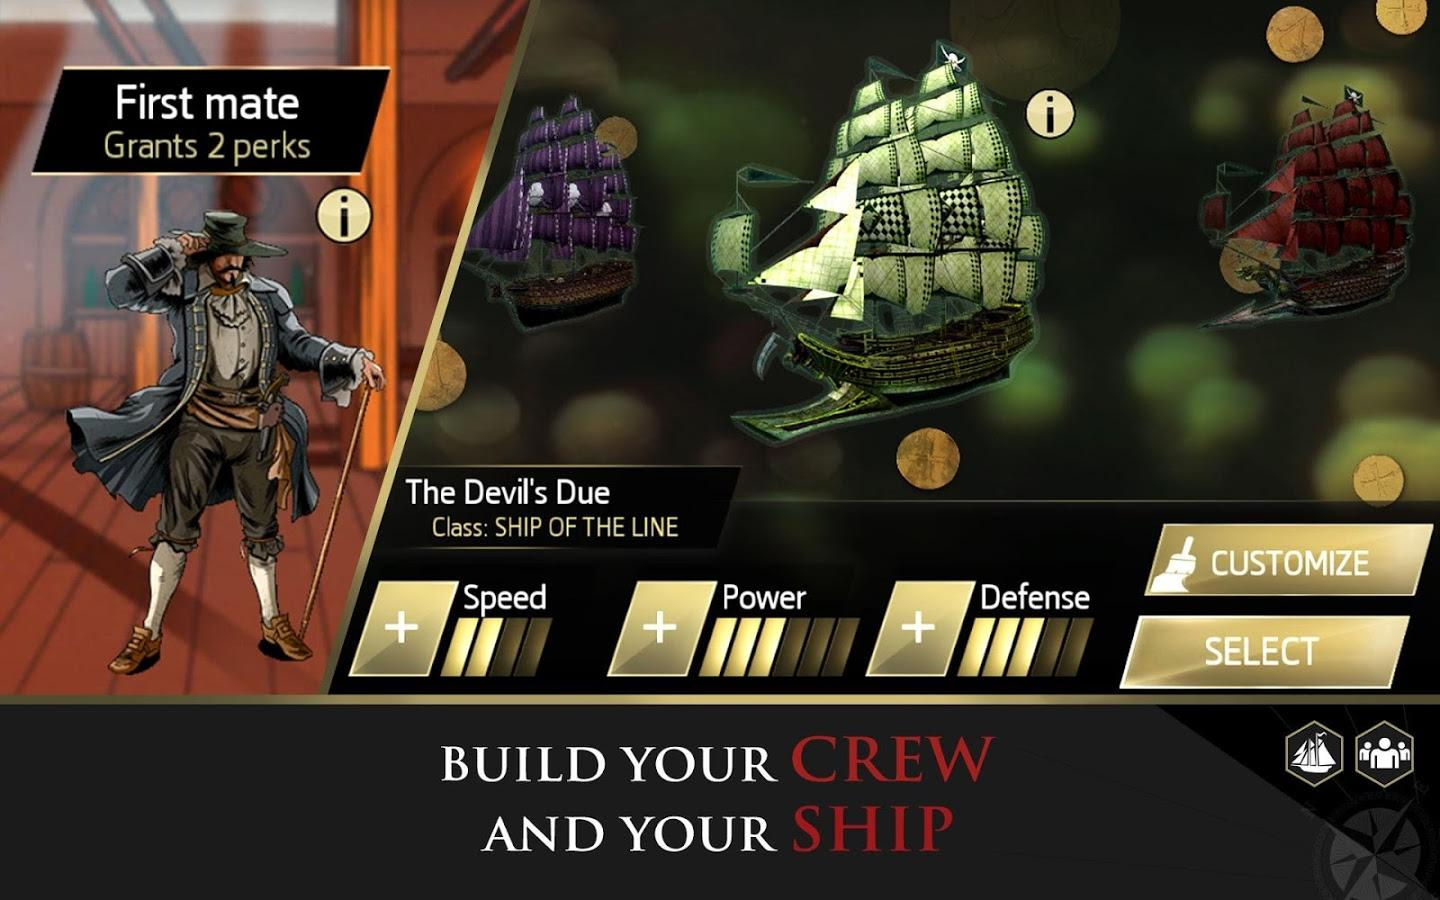 Assassin's Creed Pirates (MOD APK, Unlimited Money) v2.9.1 5